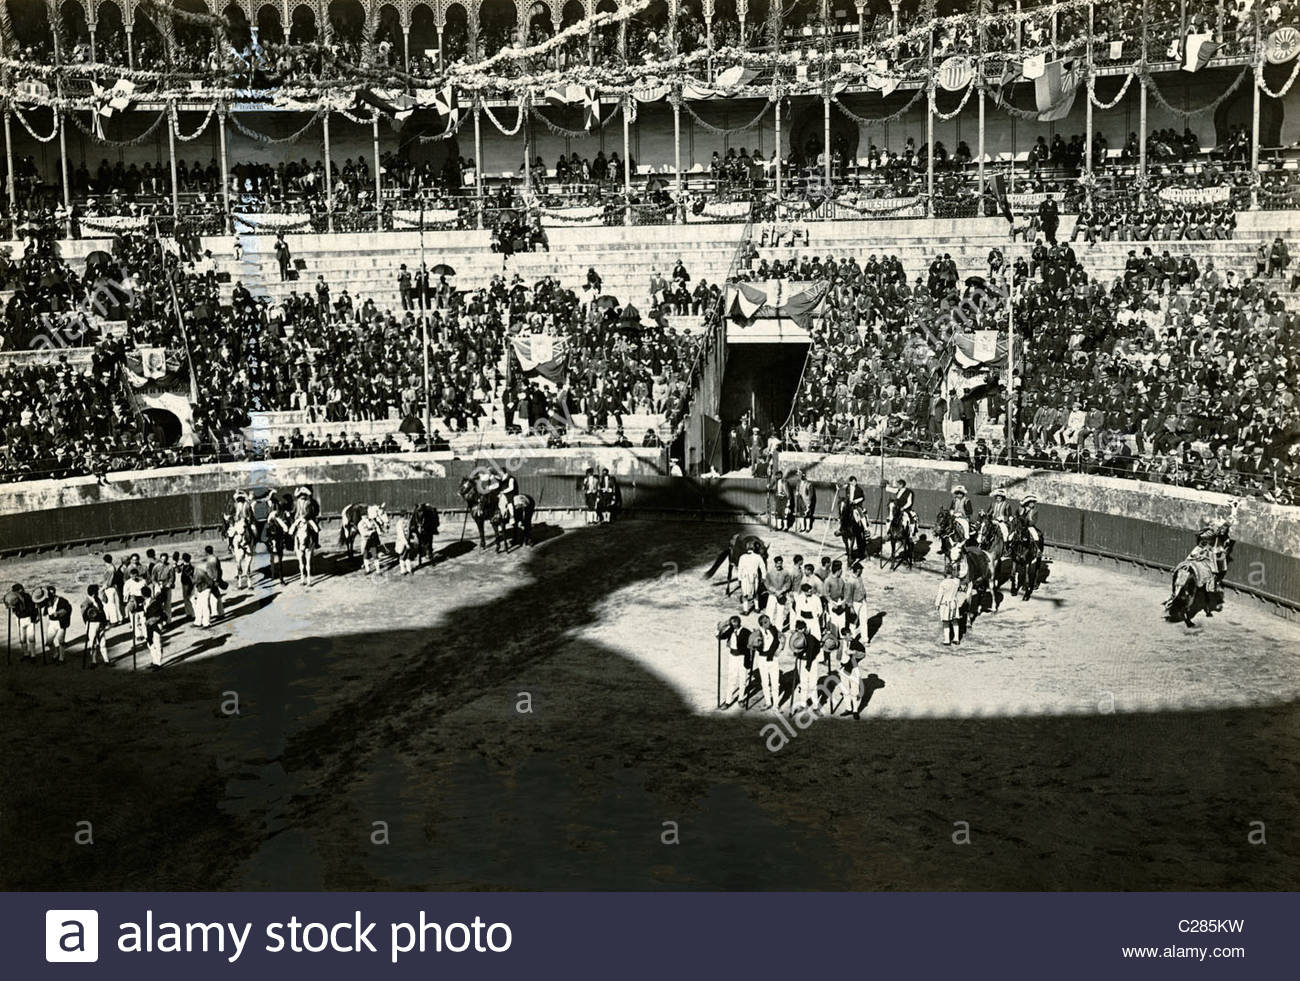 A view of the opening ceremonies at the Campo Pequeno bullring. - Stock Image